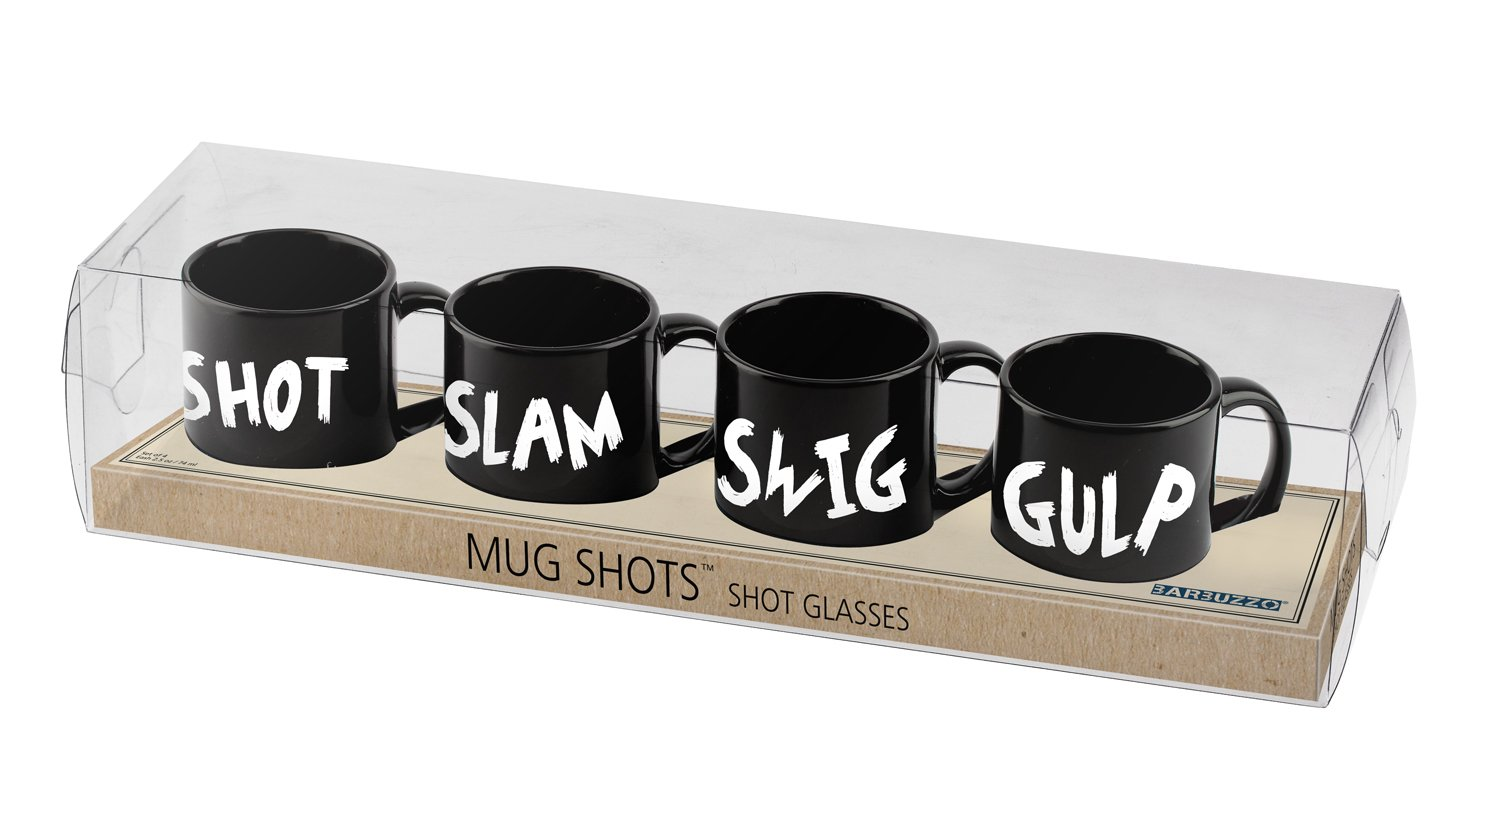 Barbuzzo Mini-Mug Shot Glasses Set of 4 Shot Glasses Shaped Like Coffee Mugs - From Your Morning Espresso to Lining Up Your Favorite Shots UTU3GI0074